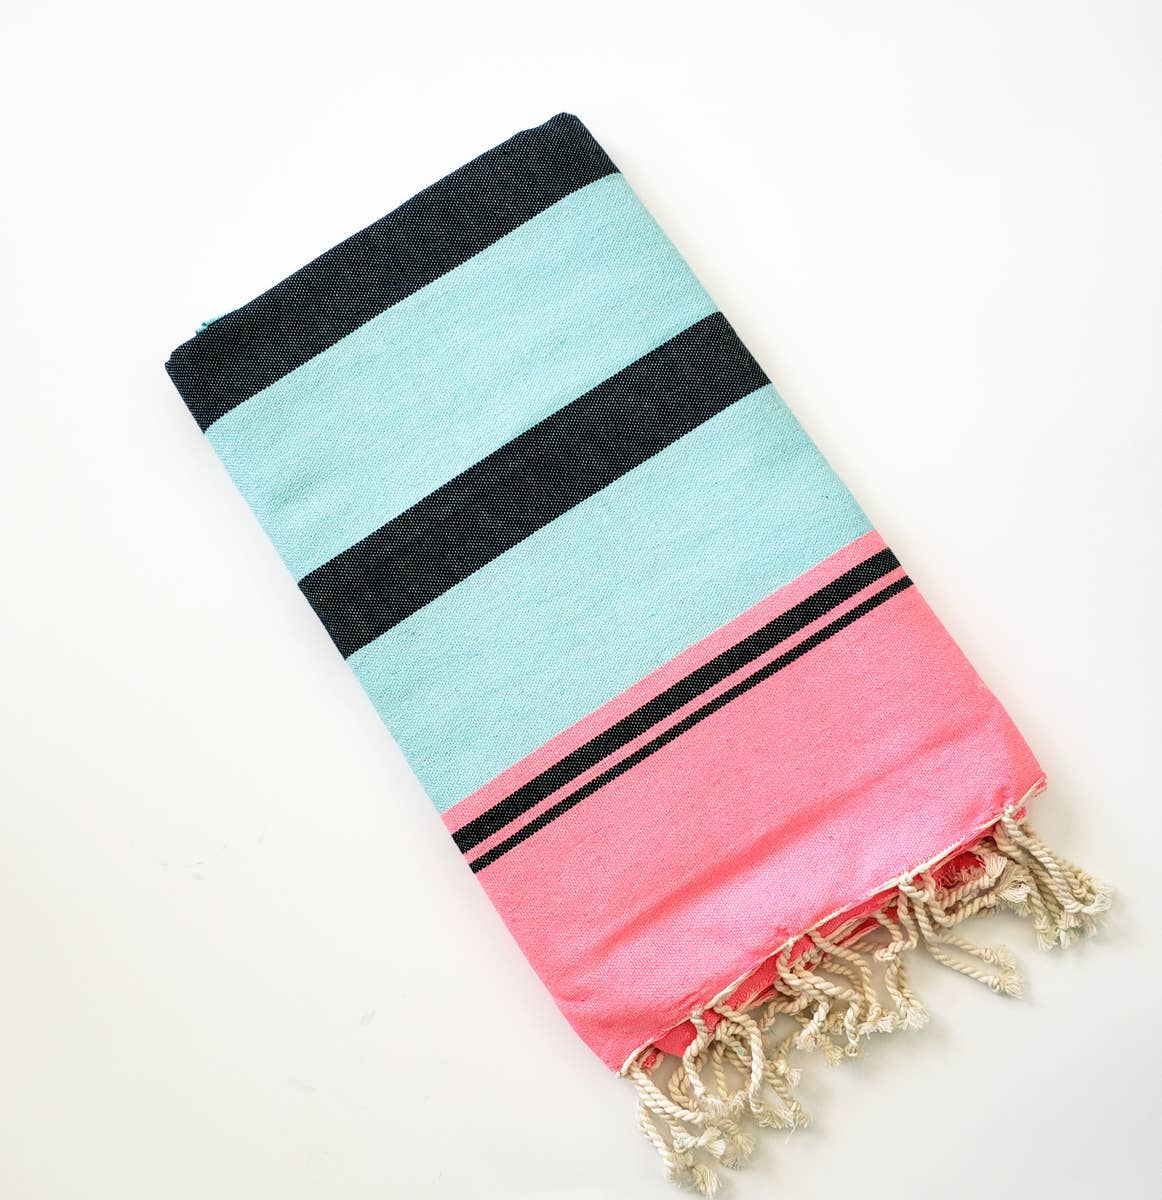 Turkish Beach Towel - Aqua/Pink/Black